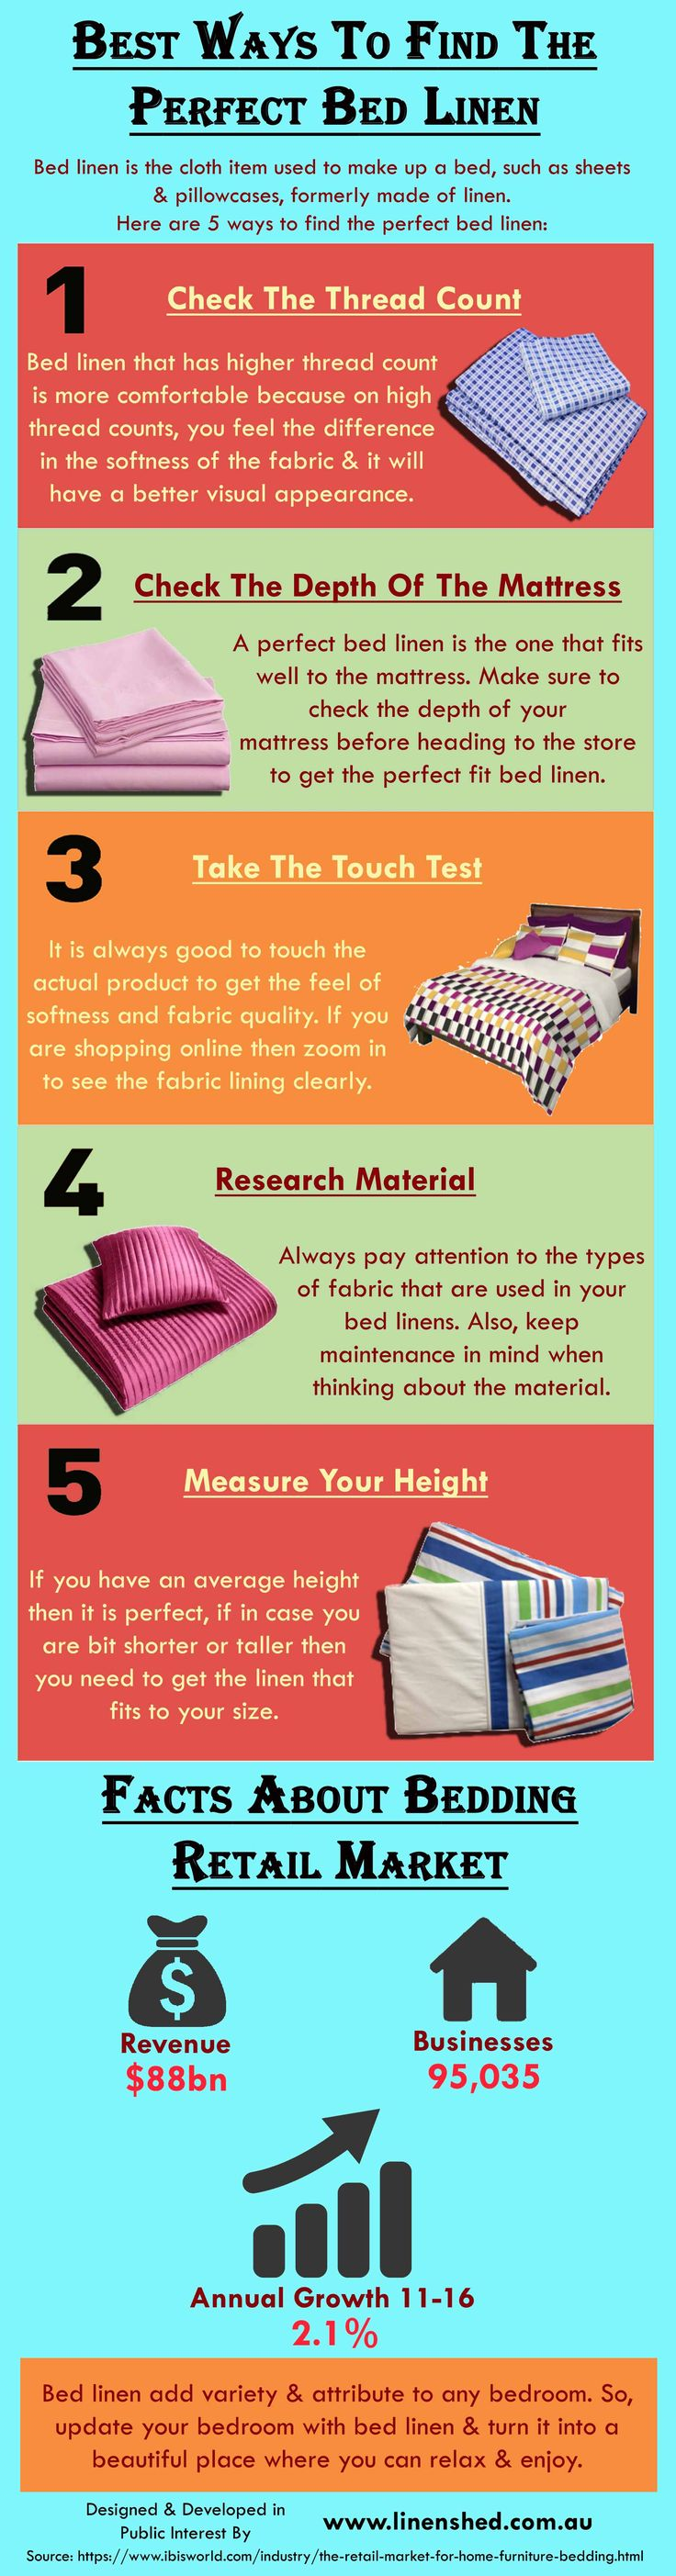 This infographic provide information on Best Ways To Find The Perfect Bed Linen. For more details please visit: https://www.linenshed.com.au.